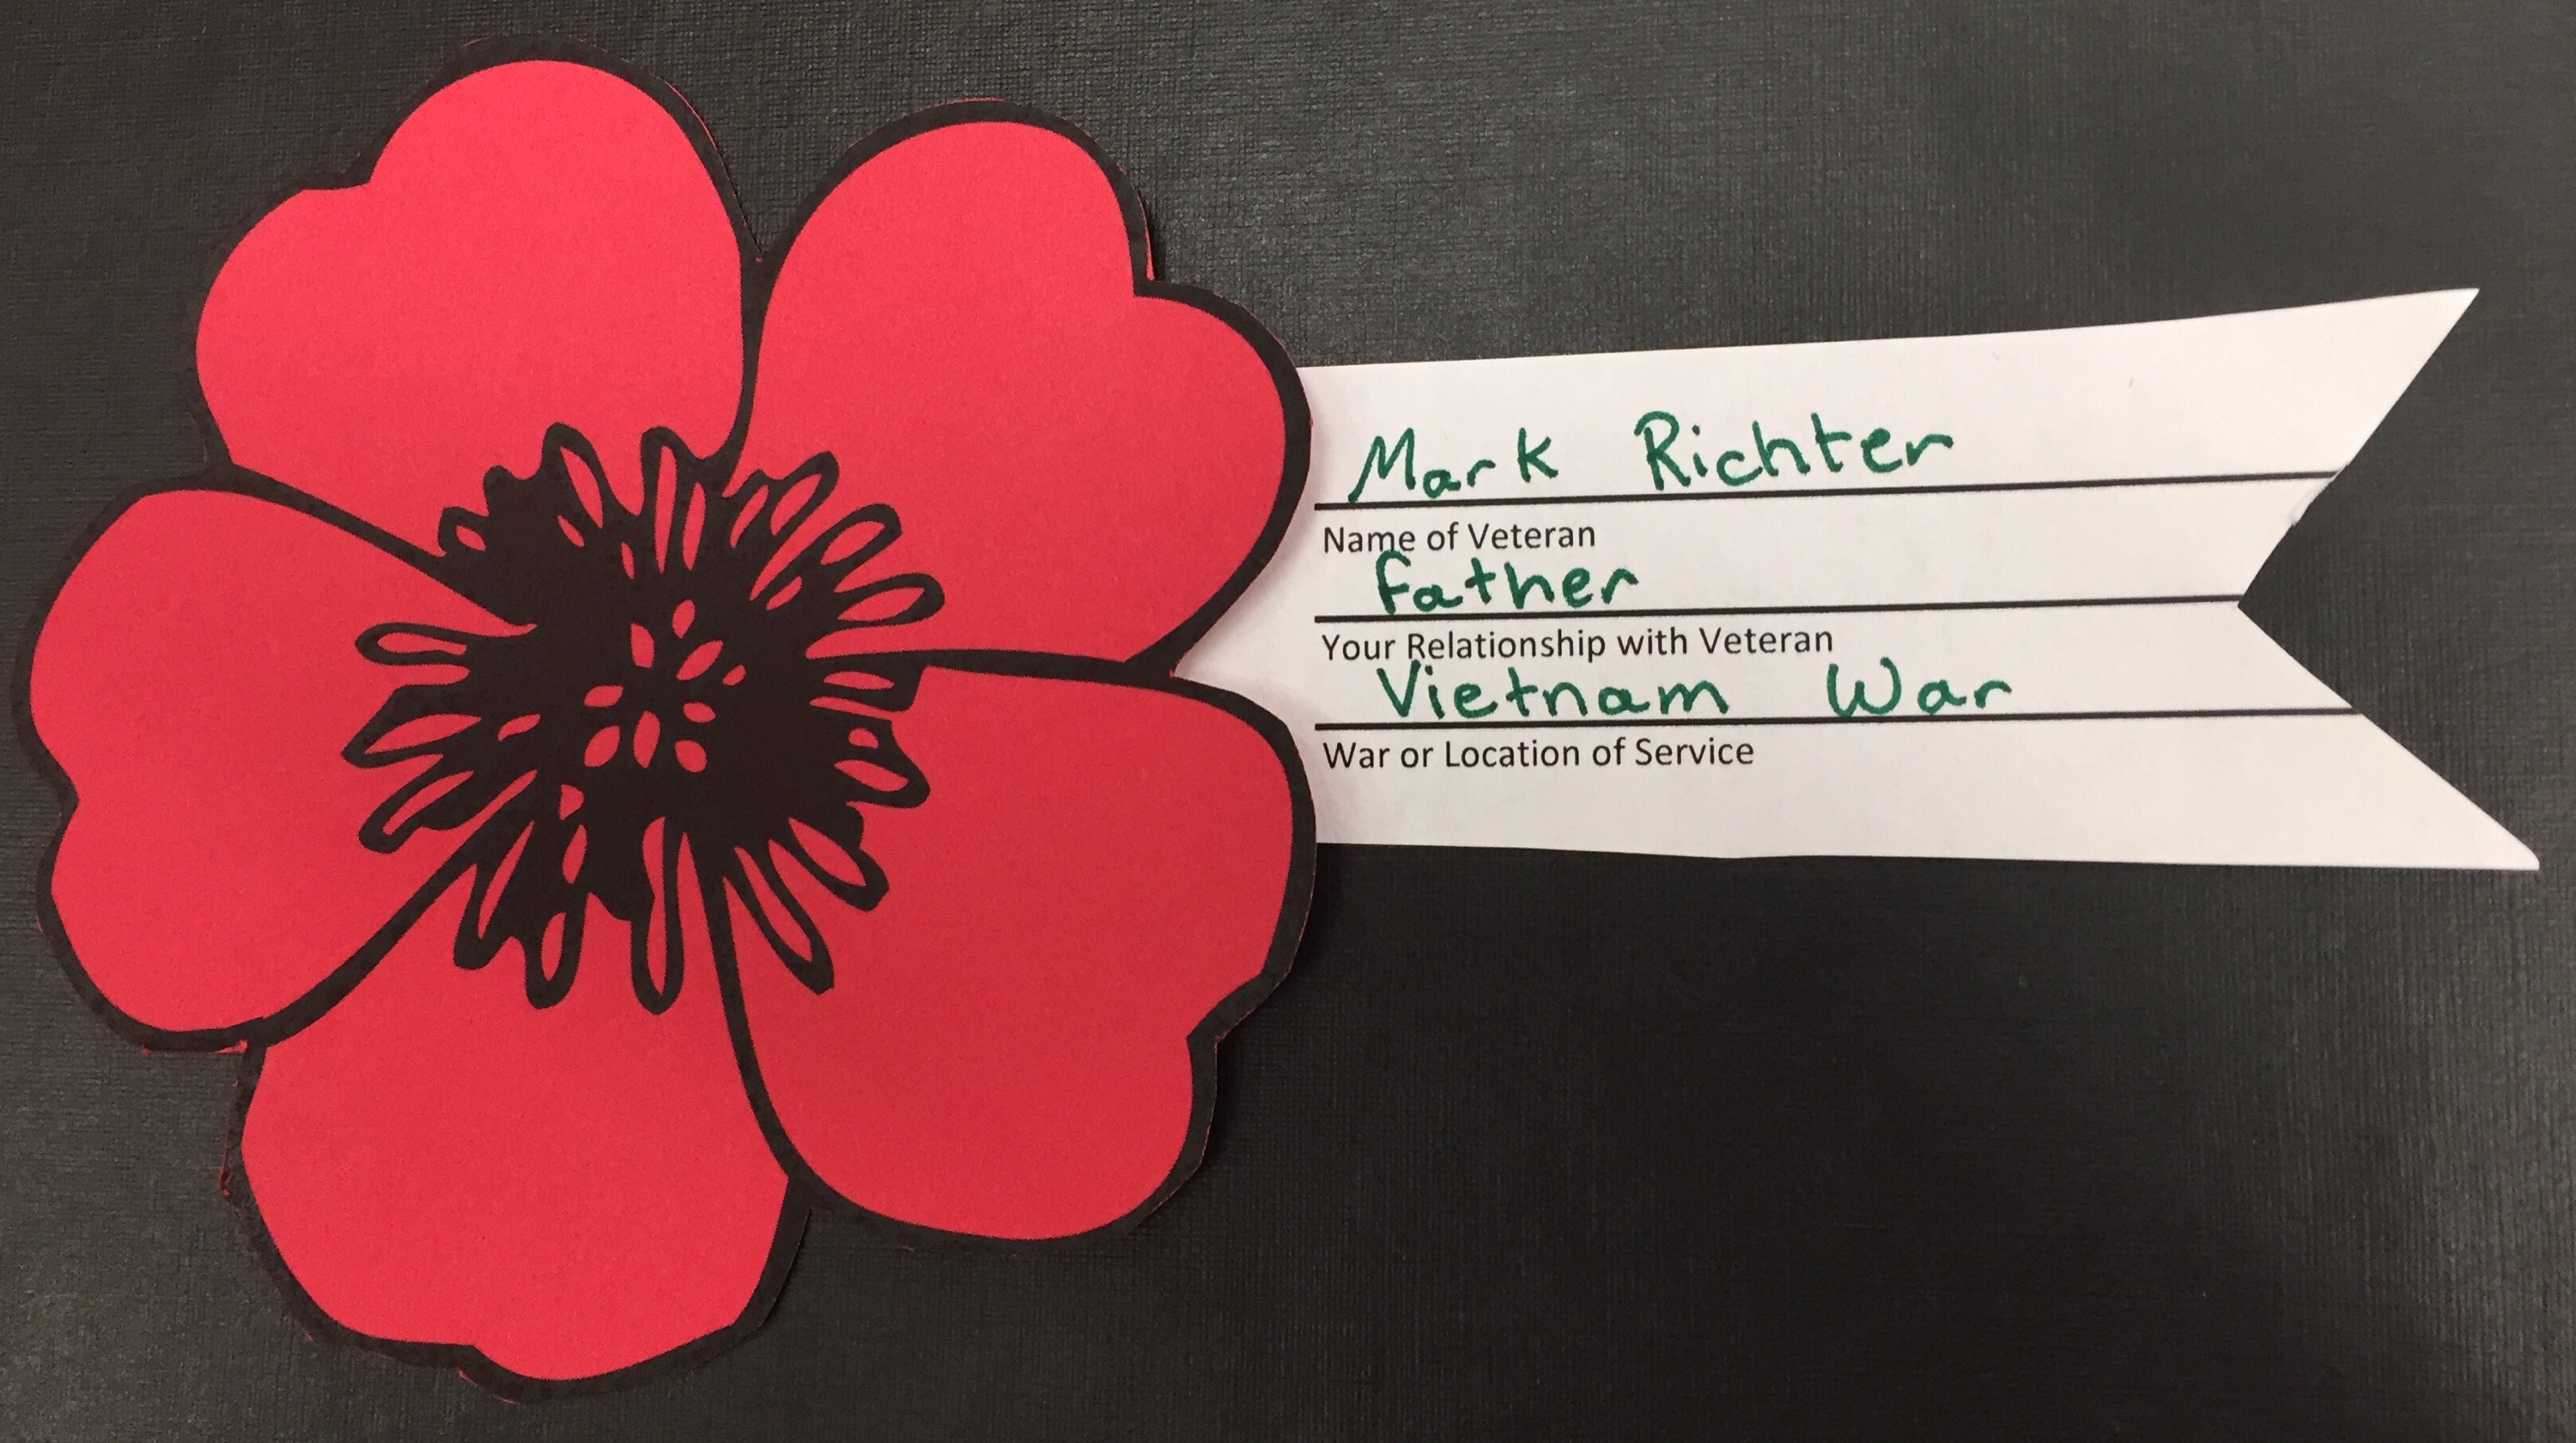 Veterans day 2016 veterans day poppies lee high school library s day october 31st november 3rd go home and ask your family about relatives or members of your community who have served in the military mightylinksfo